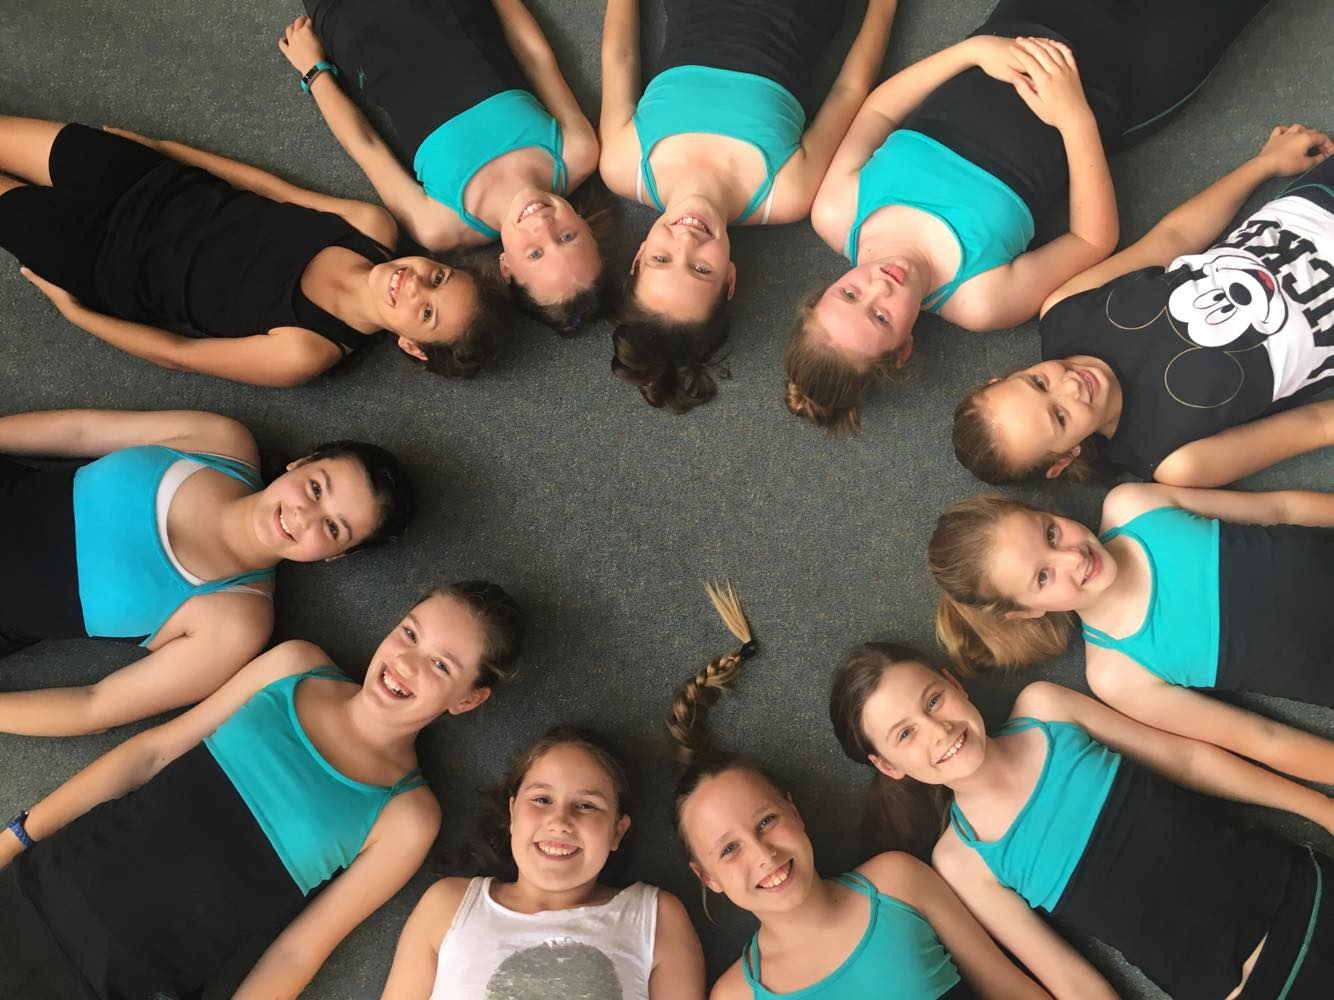 Fun in class at Hunters Hill Physie